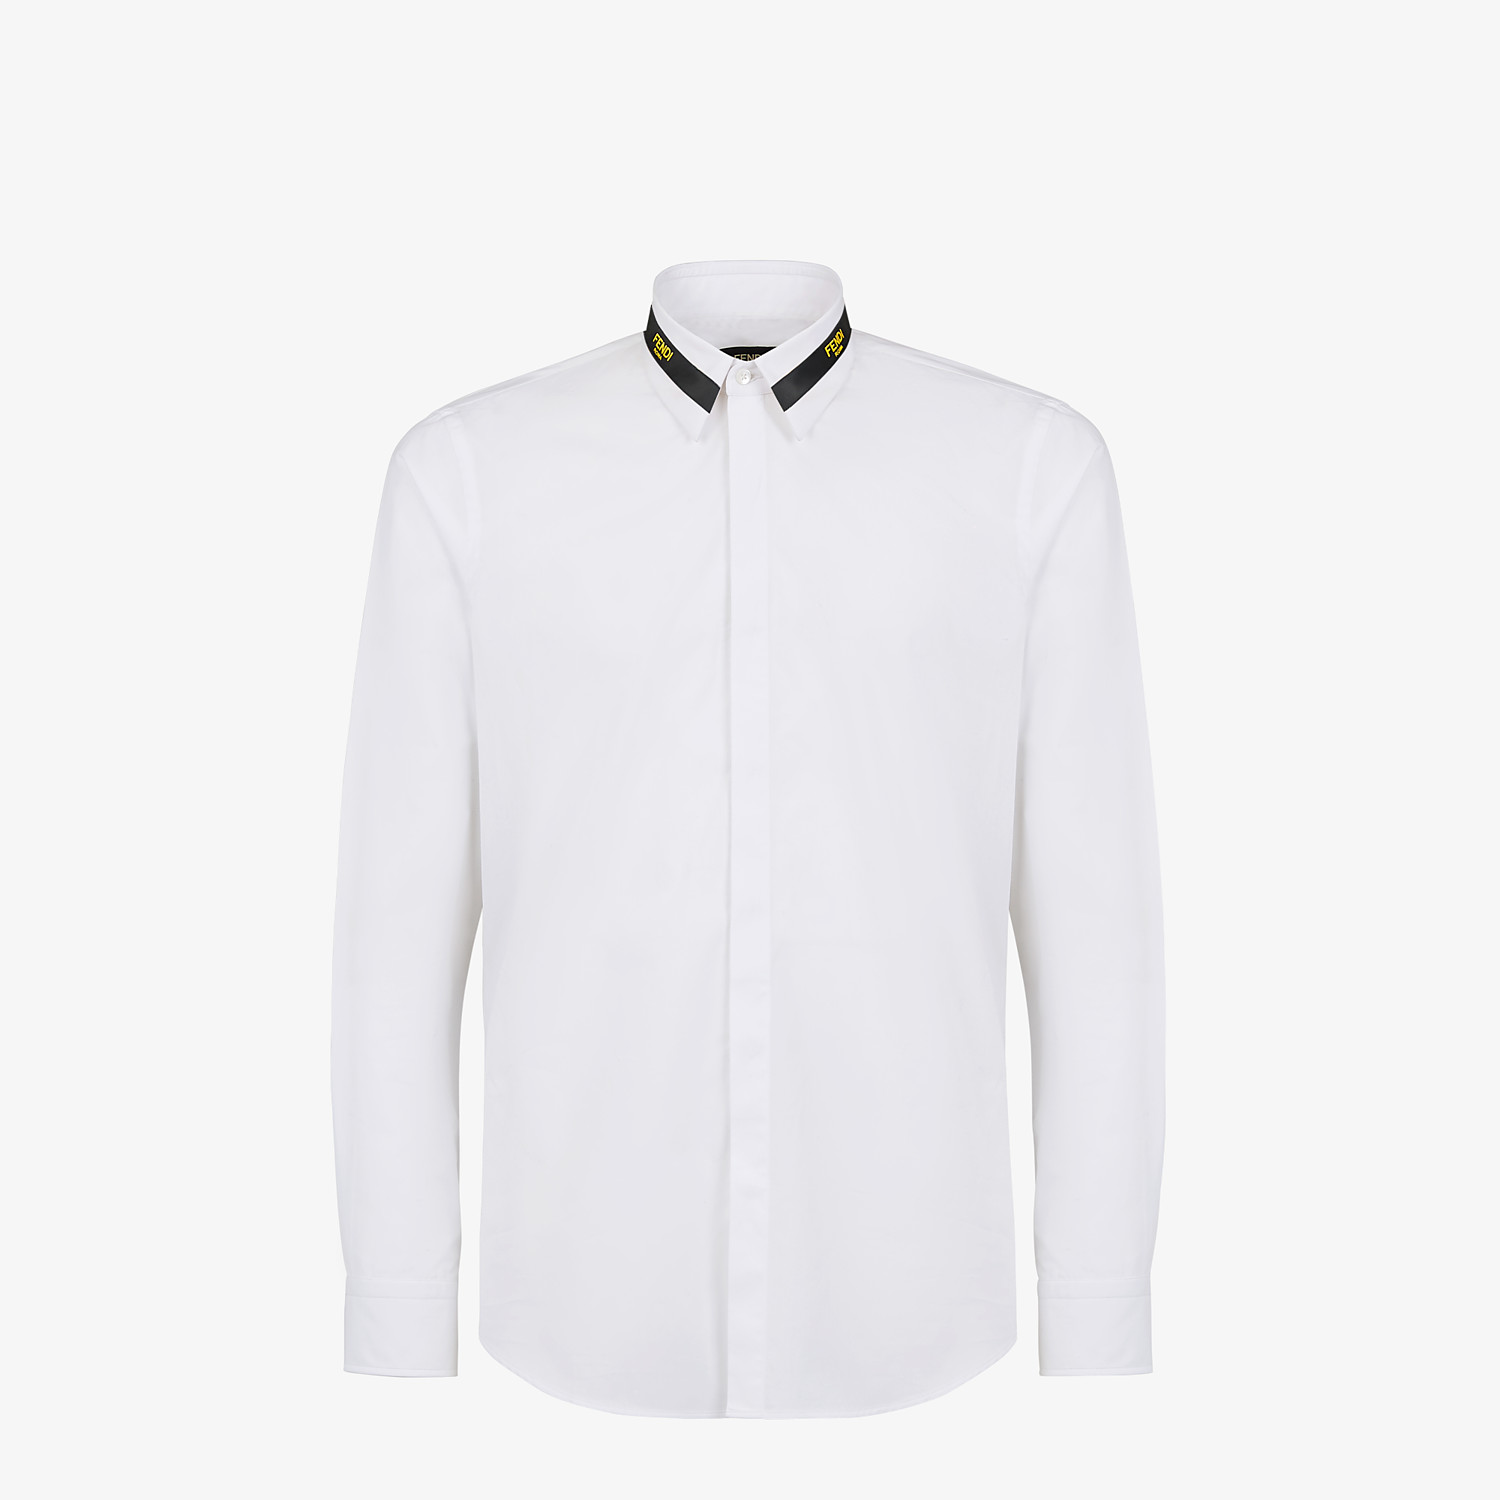 FENDI SHIRT - White cotton shirt - view 1 detail